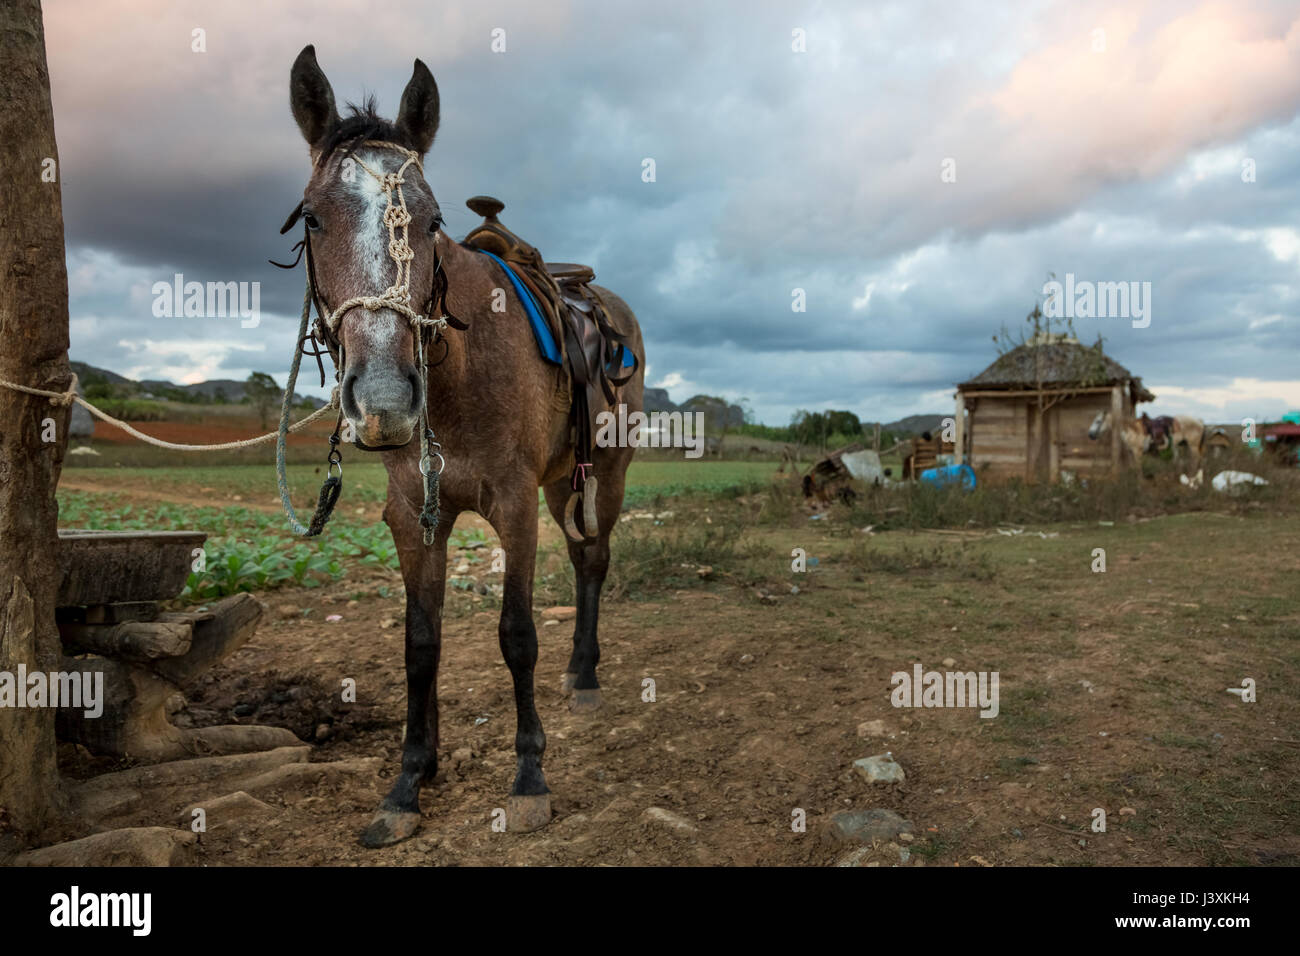 Horse tied to field fence post, Vinales, Cuba - Stock Image